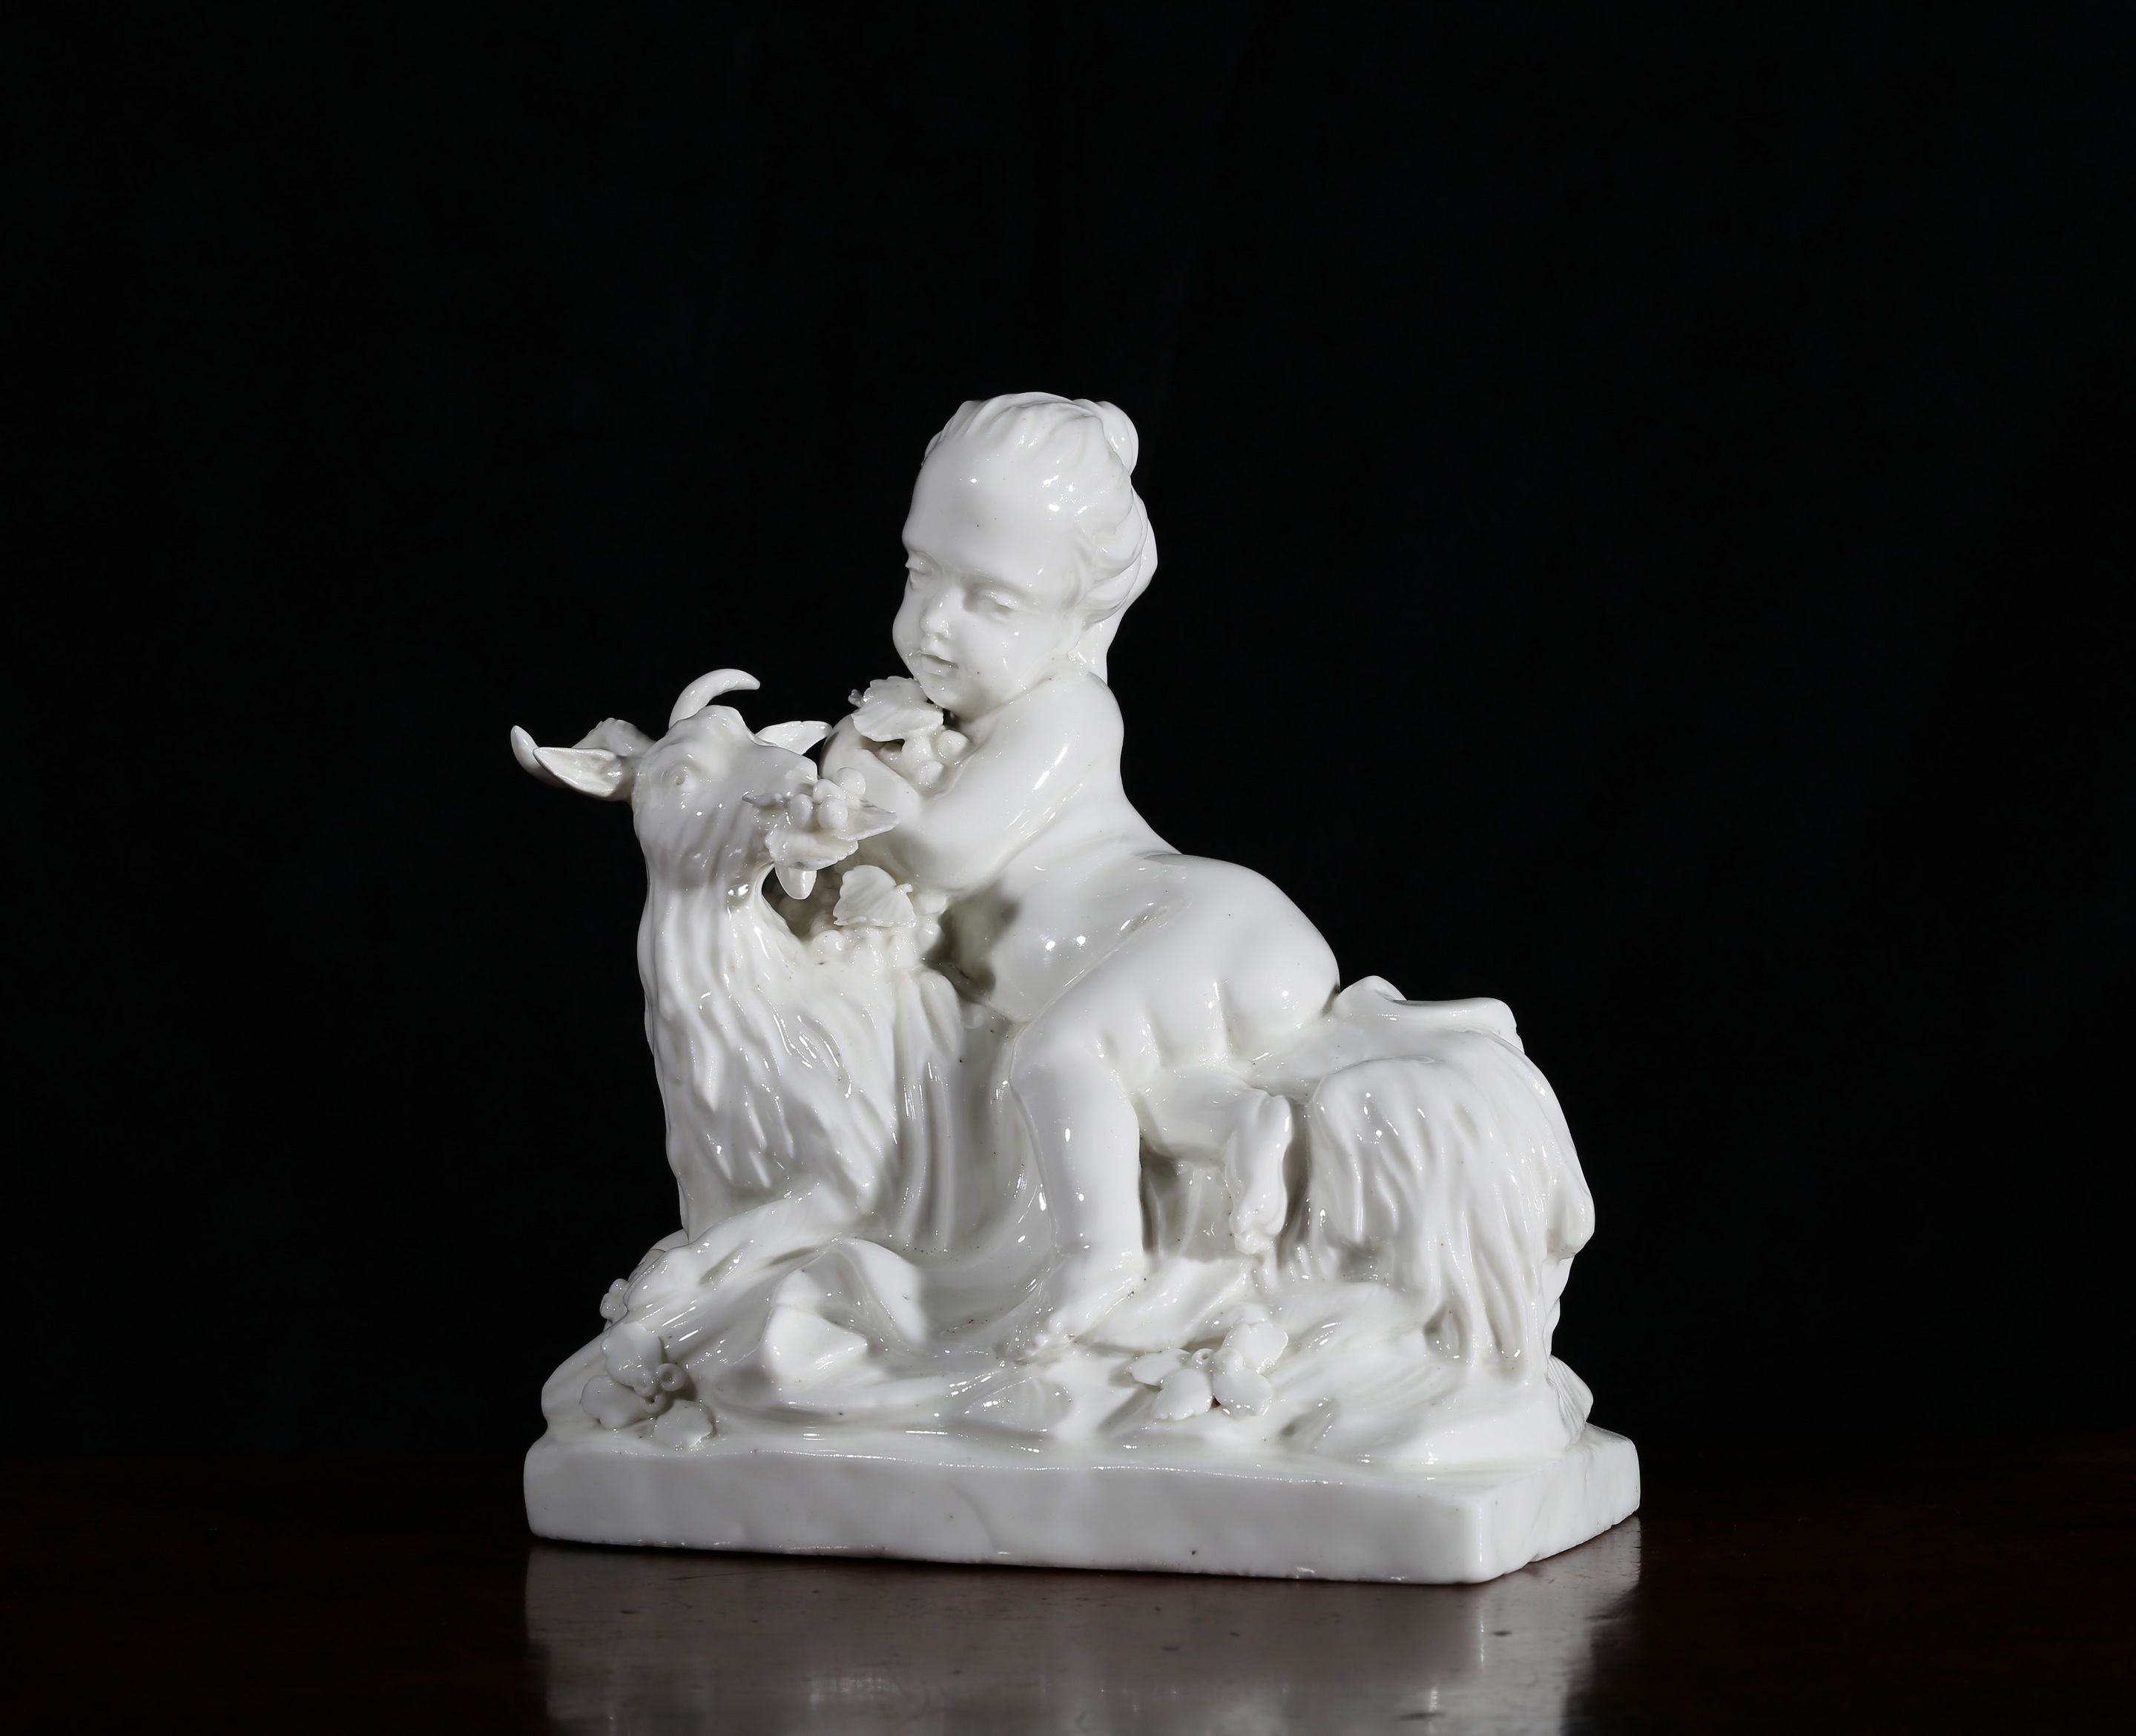 A white French figure of a child with a recumbent goat, probably Saint-Cloud